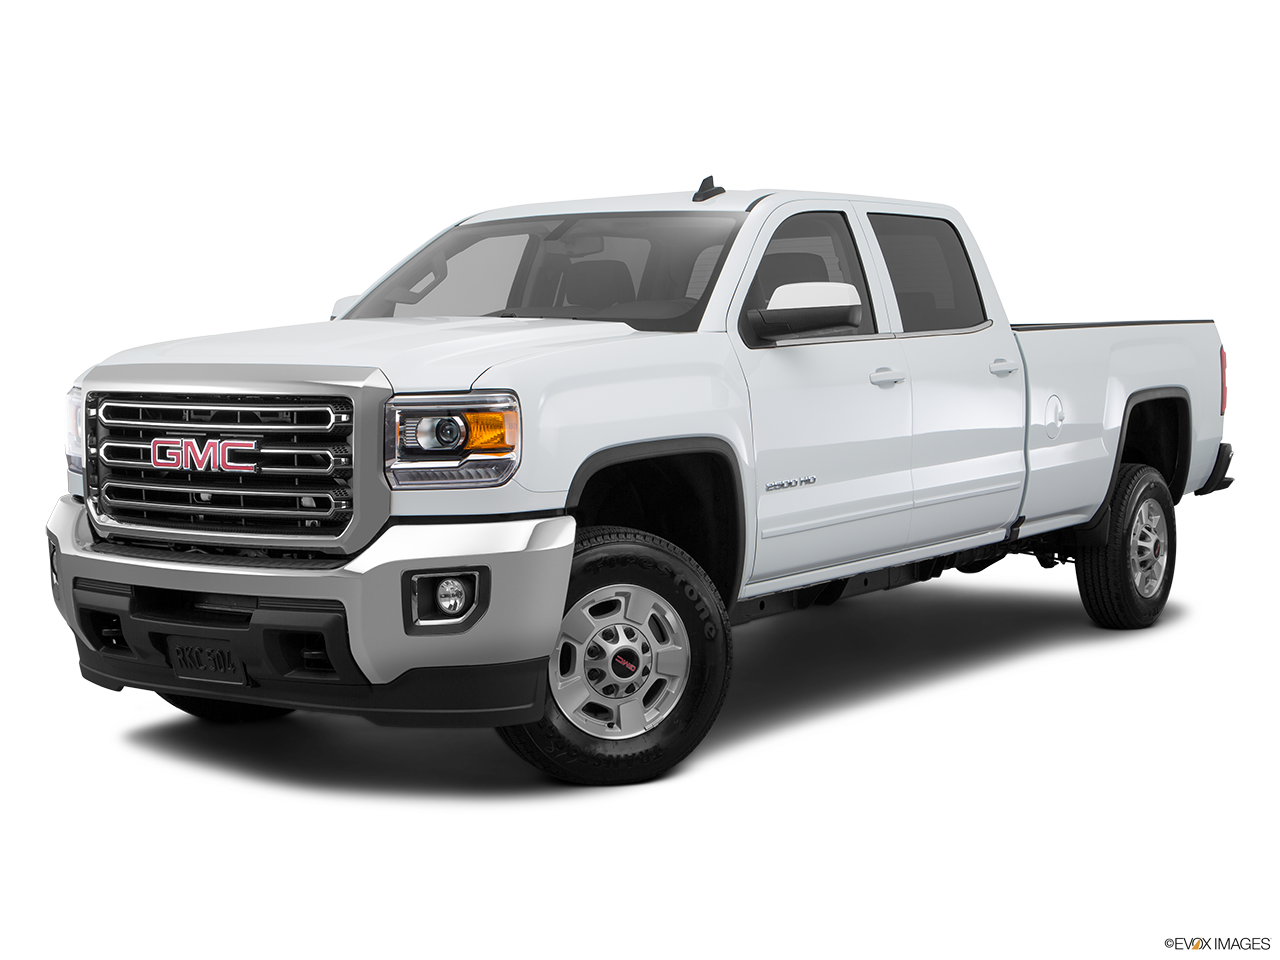 2016 gmc sierra 2500hd inland empire moss bros buick gmc. Black Bedroom Furniture Sets. Home Design Ideas